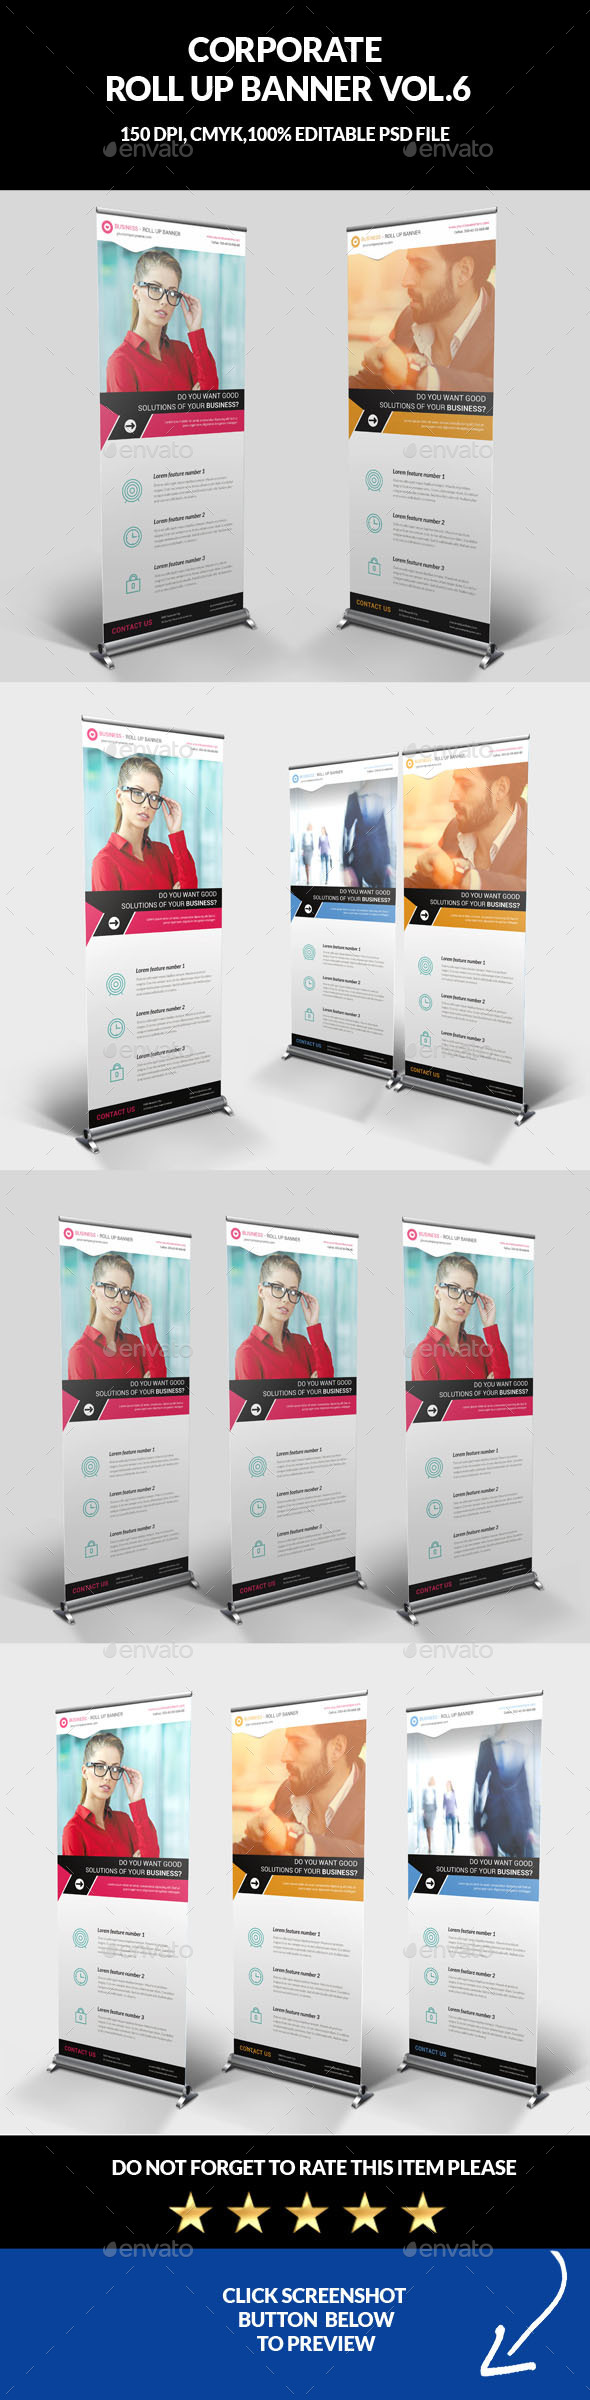 Corporate Business Roll Up Banner Vol.6 - Signage Print Templates